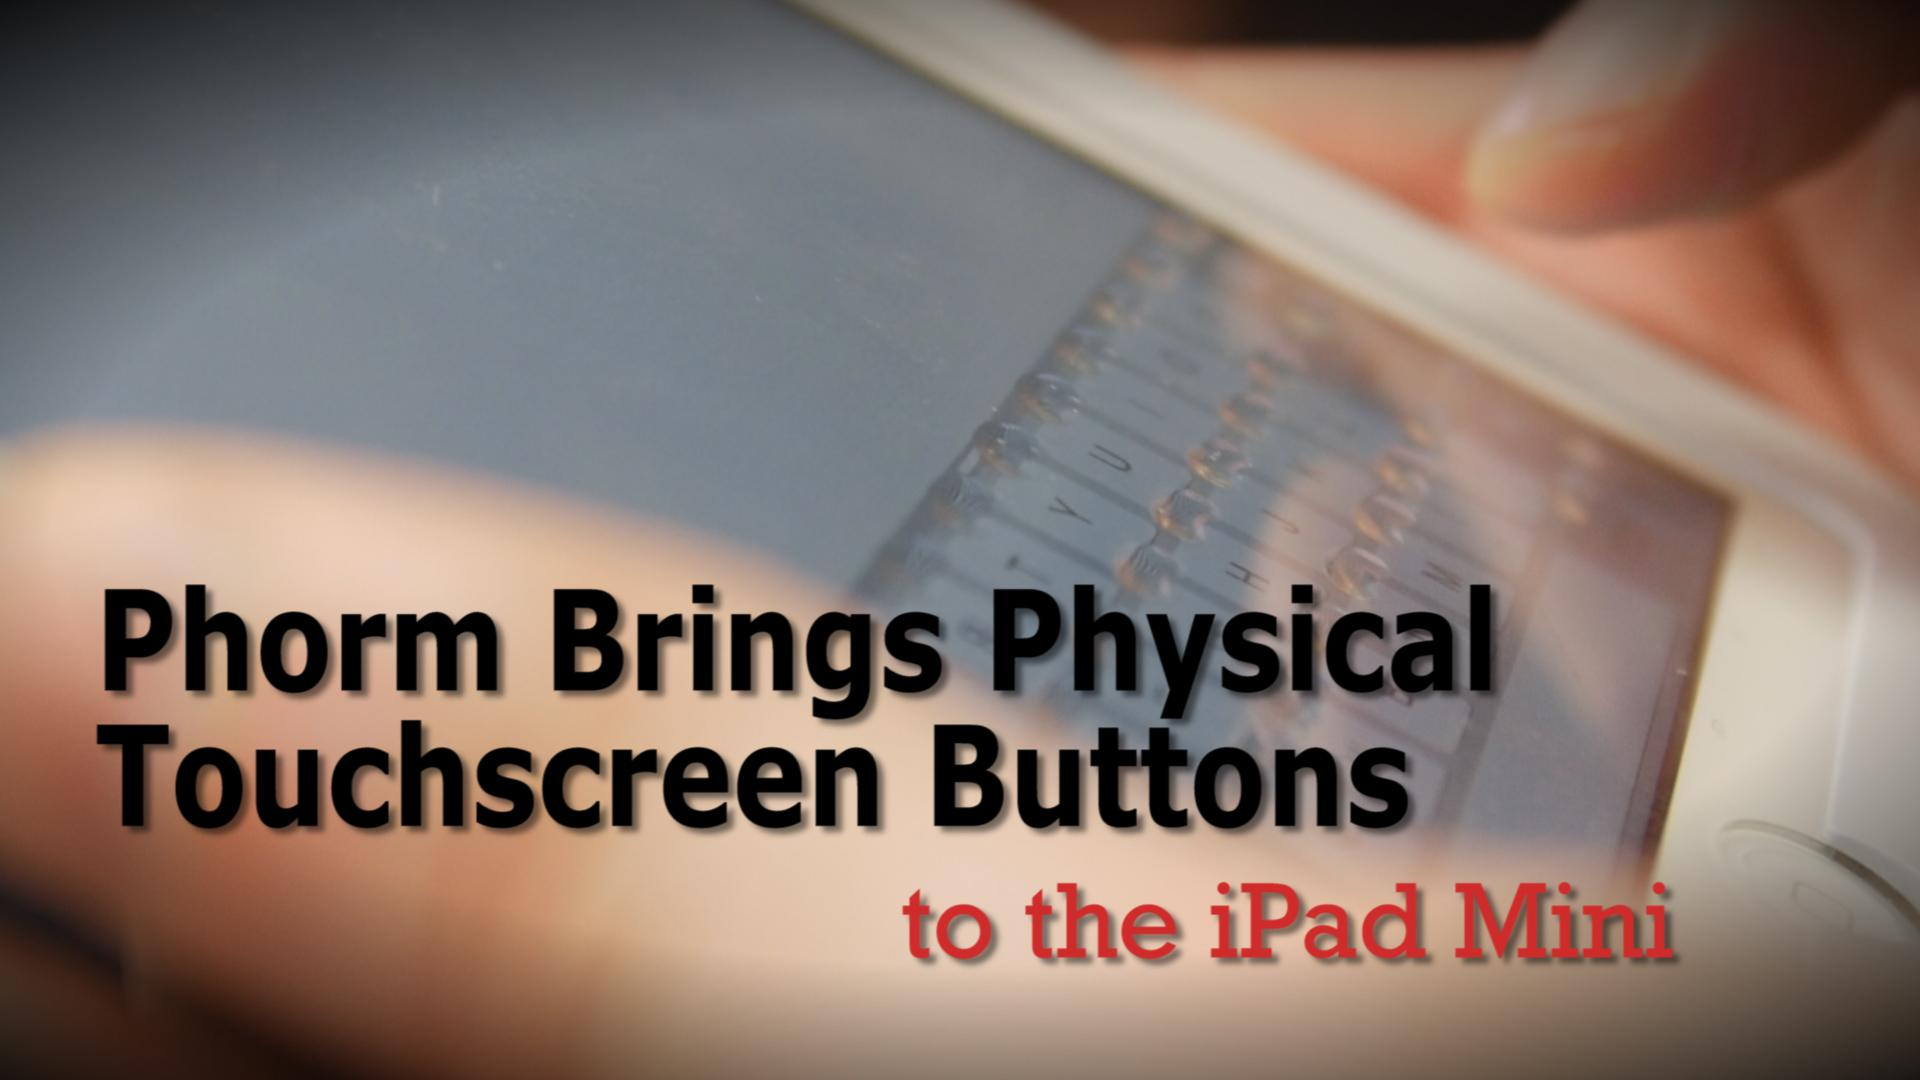 Phorm Brings Physical Touchscreen Buttons To The iPad Mini